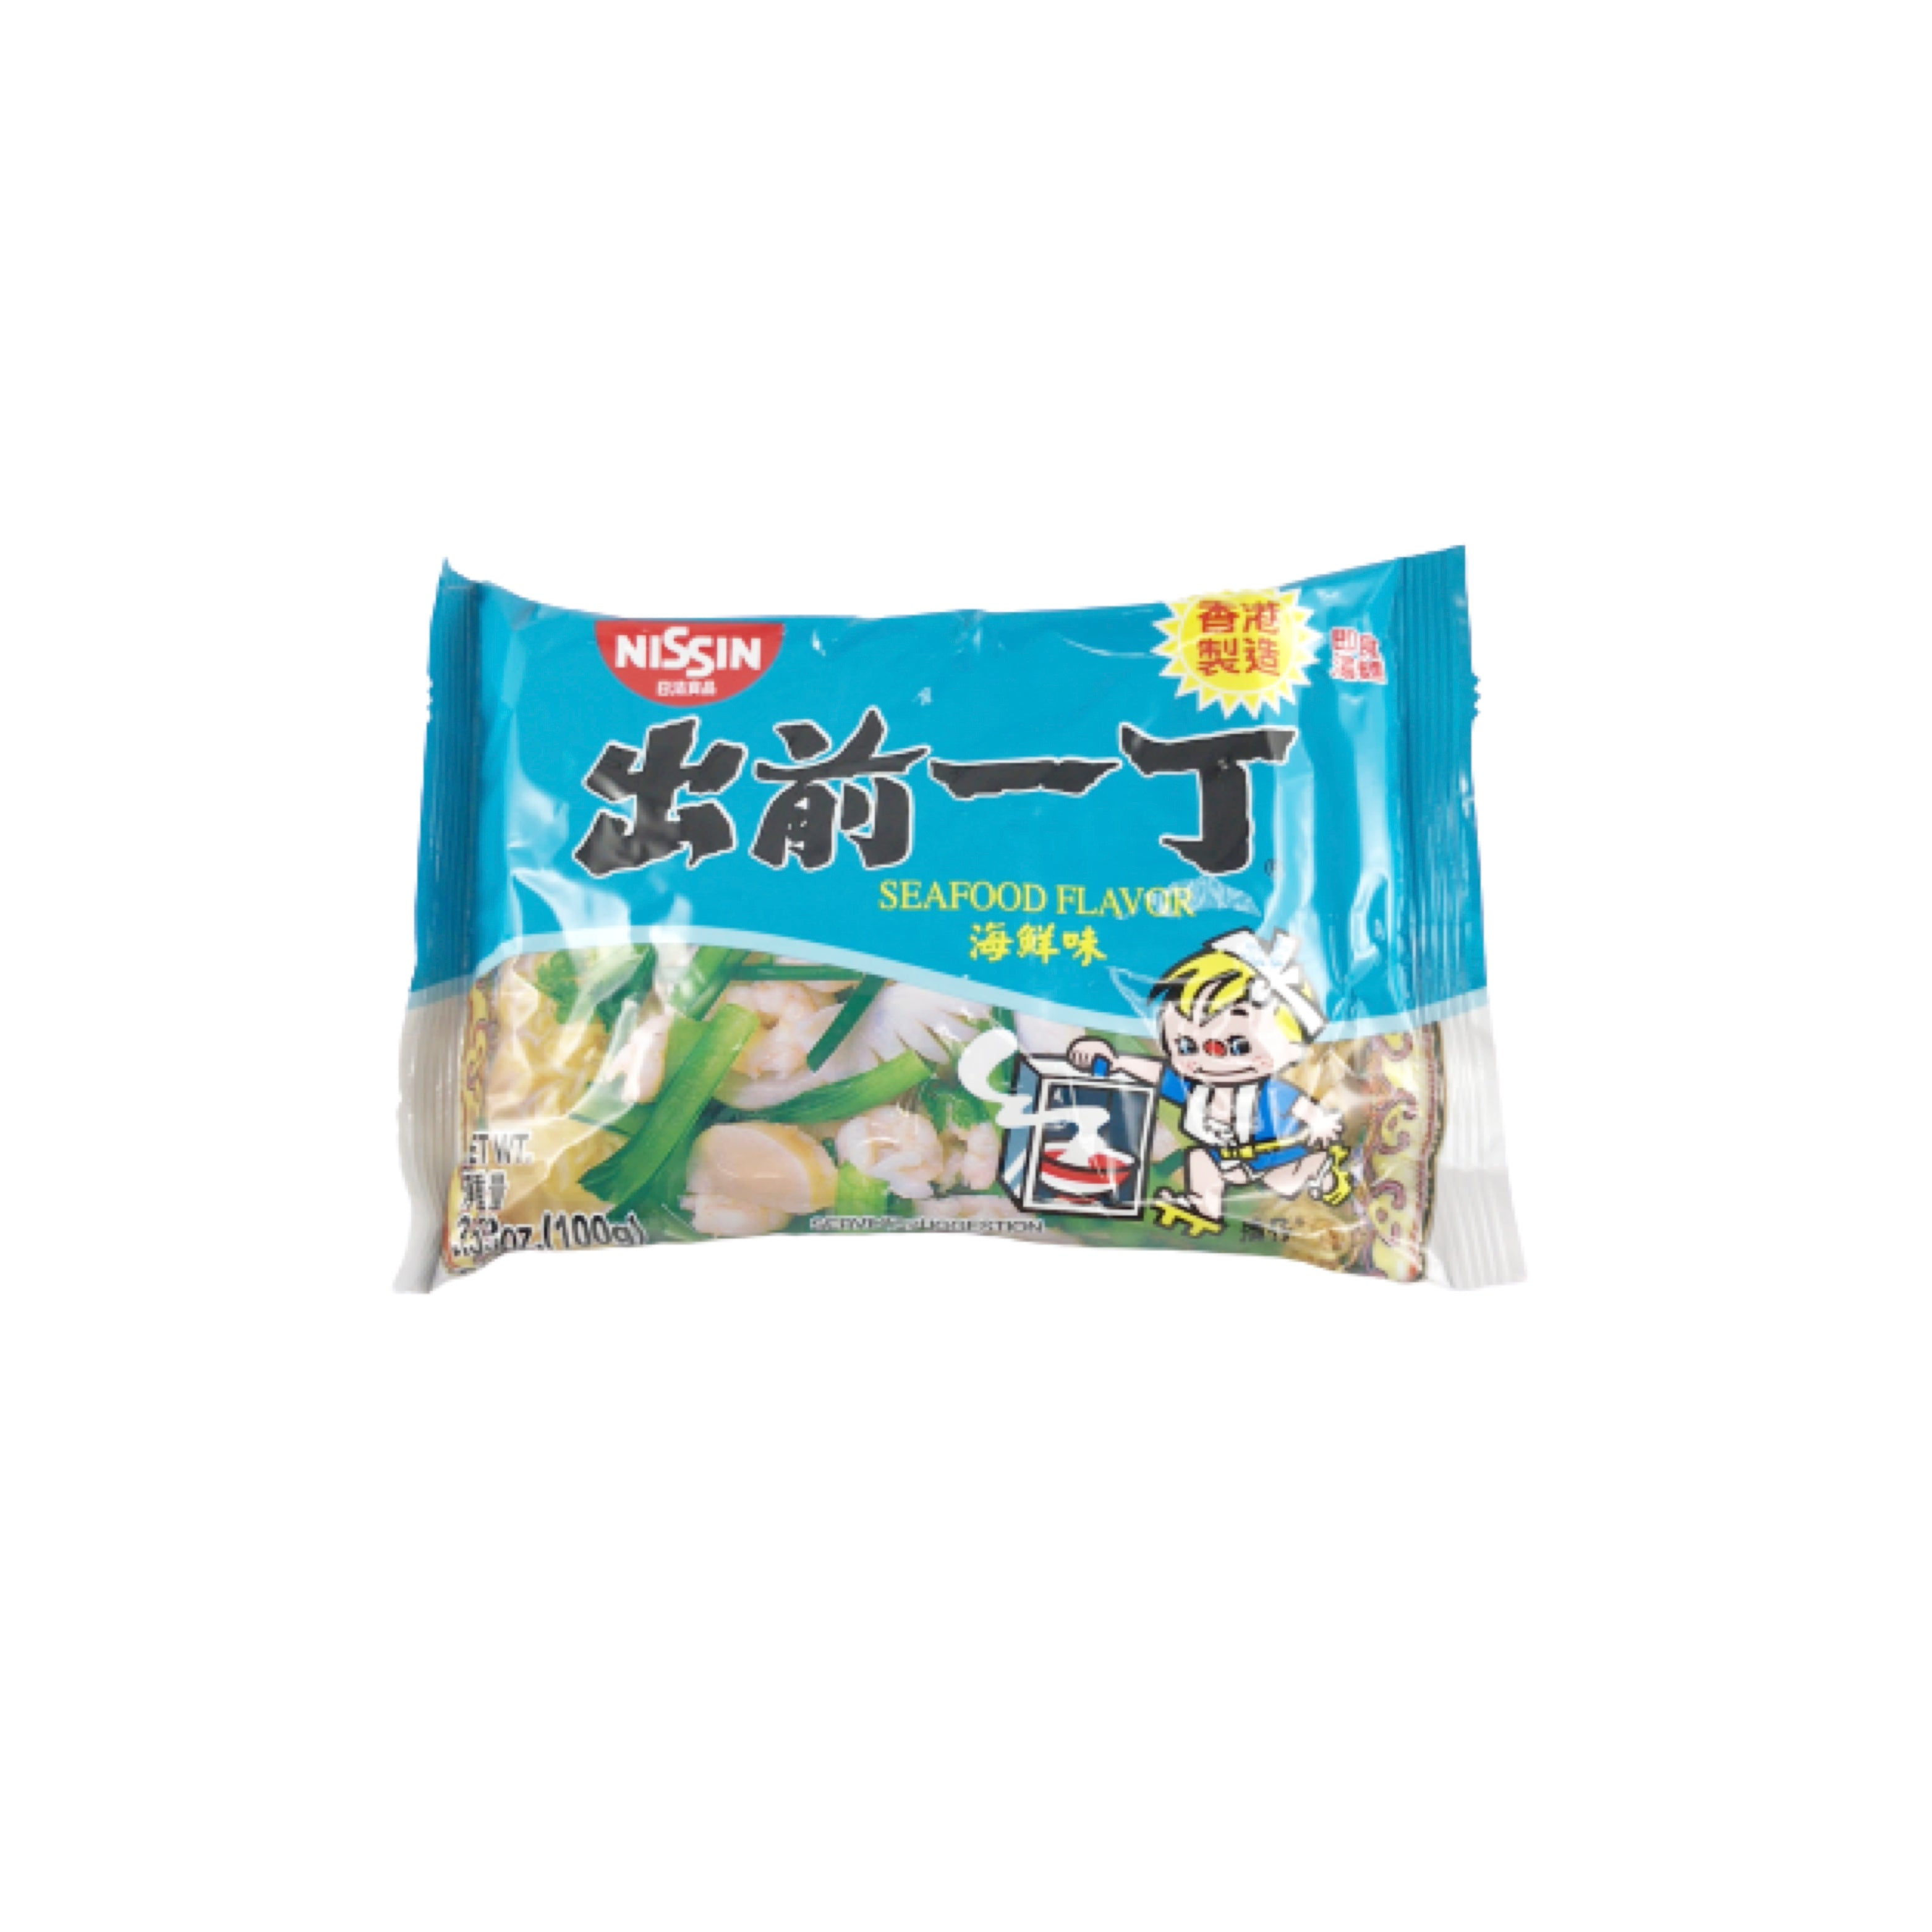 Nissin Demae Itcho Seafood Flavor Instant Noodle 出前一丁海鮮麺